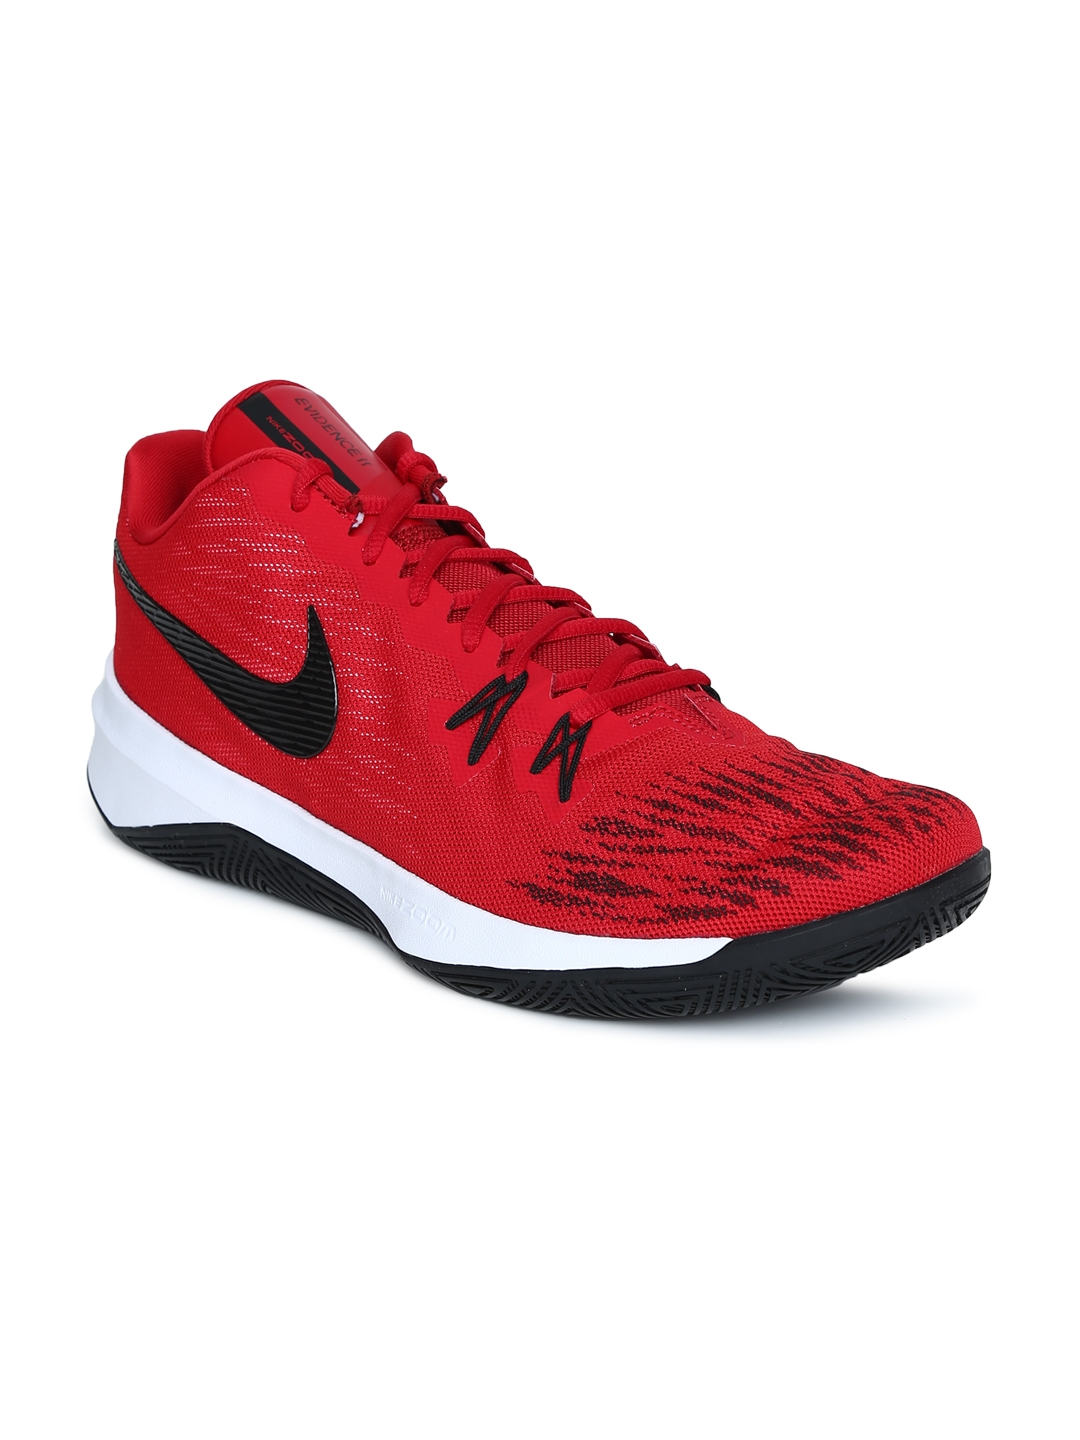 aa1b2daf8ad8 Buy Nike Men Red ZOOM EVIDENCE II Basketball Shoes - Sports Shoes ...